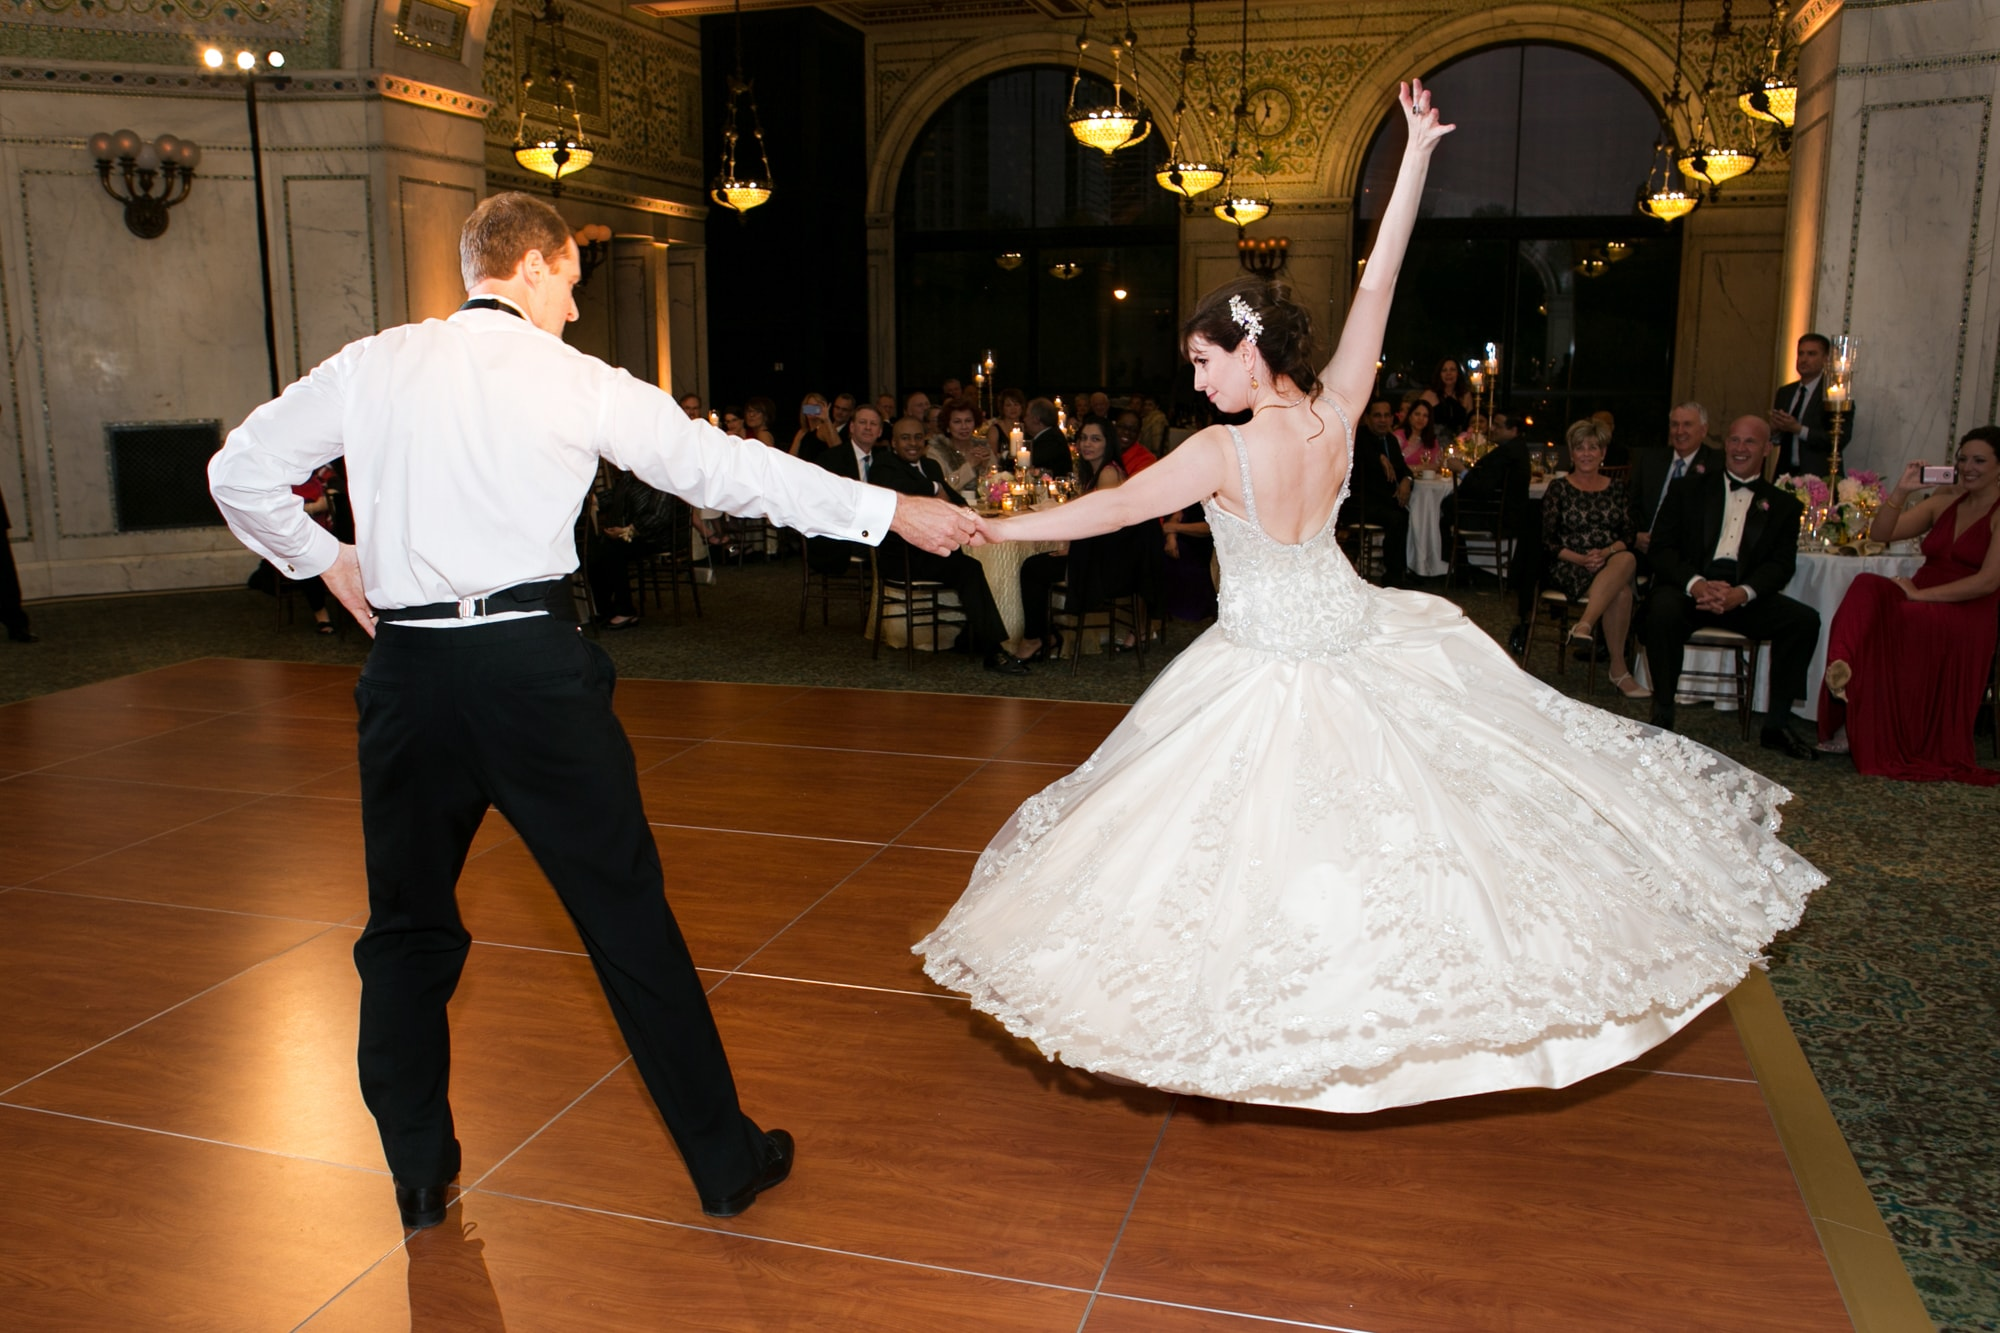 Dramatic first dance at Chicago Cultural Center wedding reception